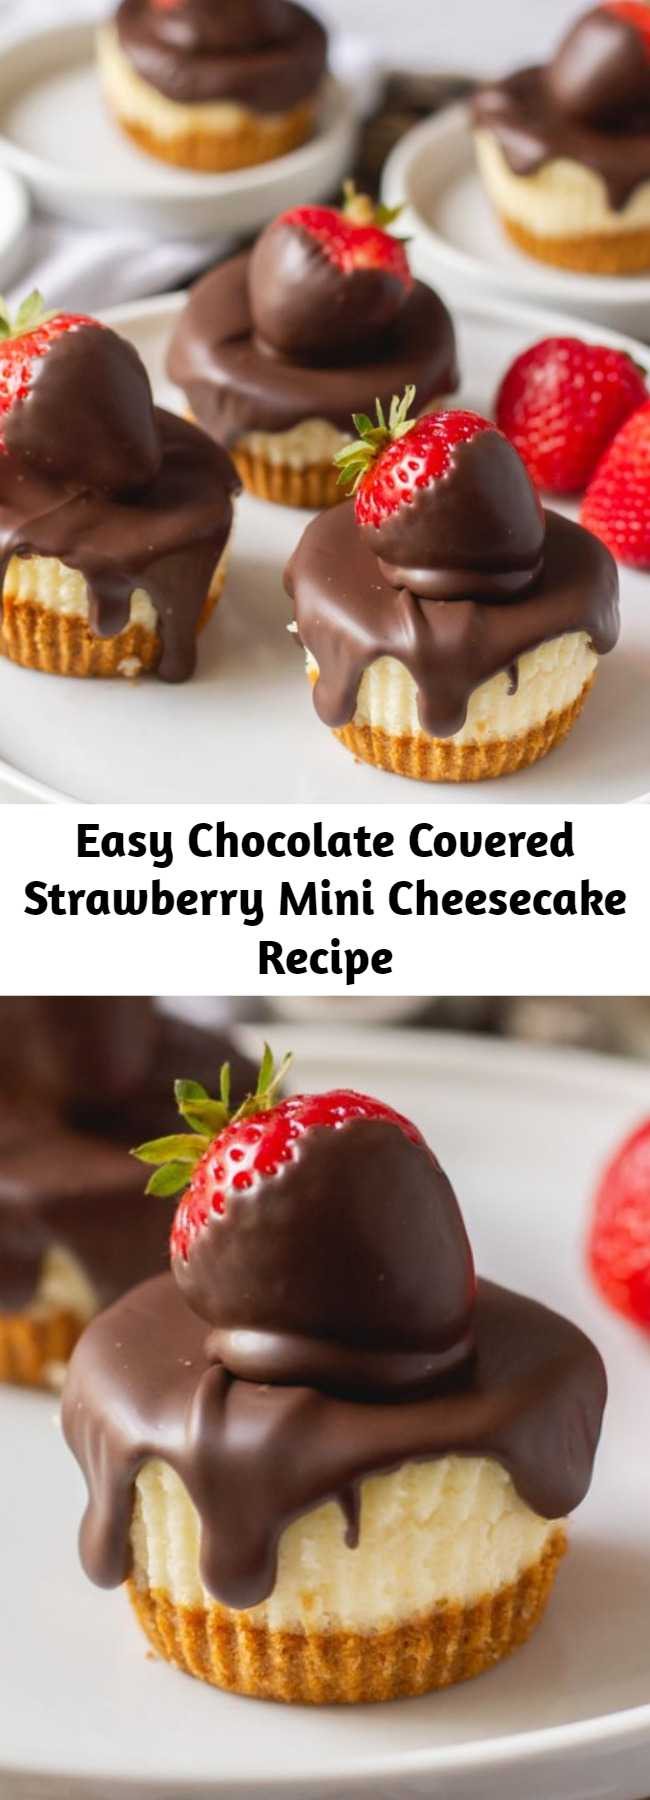 Easy Chocolate Covered Strawberry Mini Cheesecake Recipe - The best way to serve these classic mini cheesecakes is with chocolate covered strawberries on top! Check out this recipe for light and airy mini cheesecakes with a graham cracker crust – they're a delightful twist on the typical dense and creamy cheesecake!